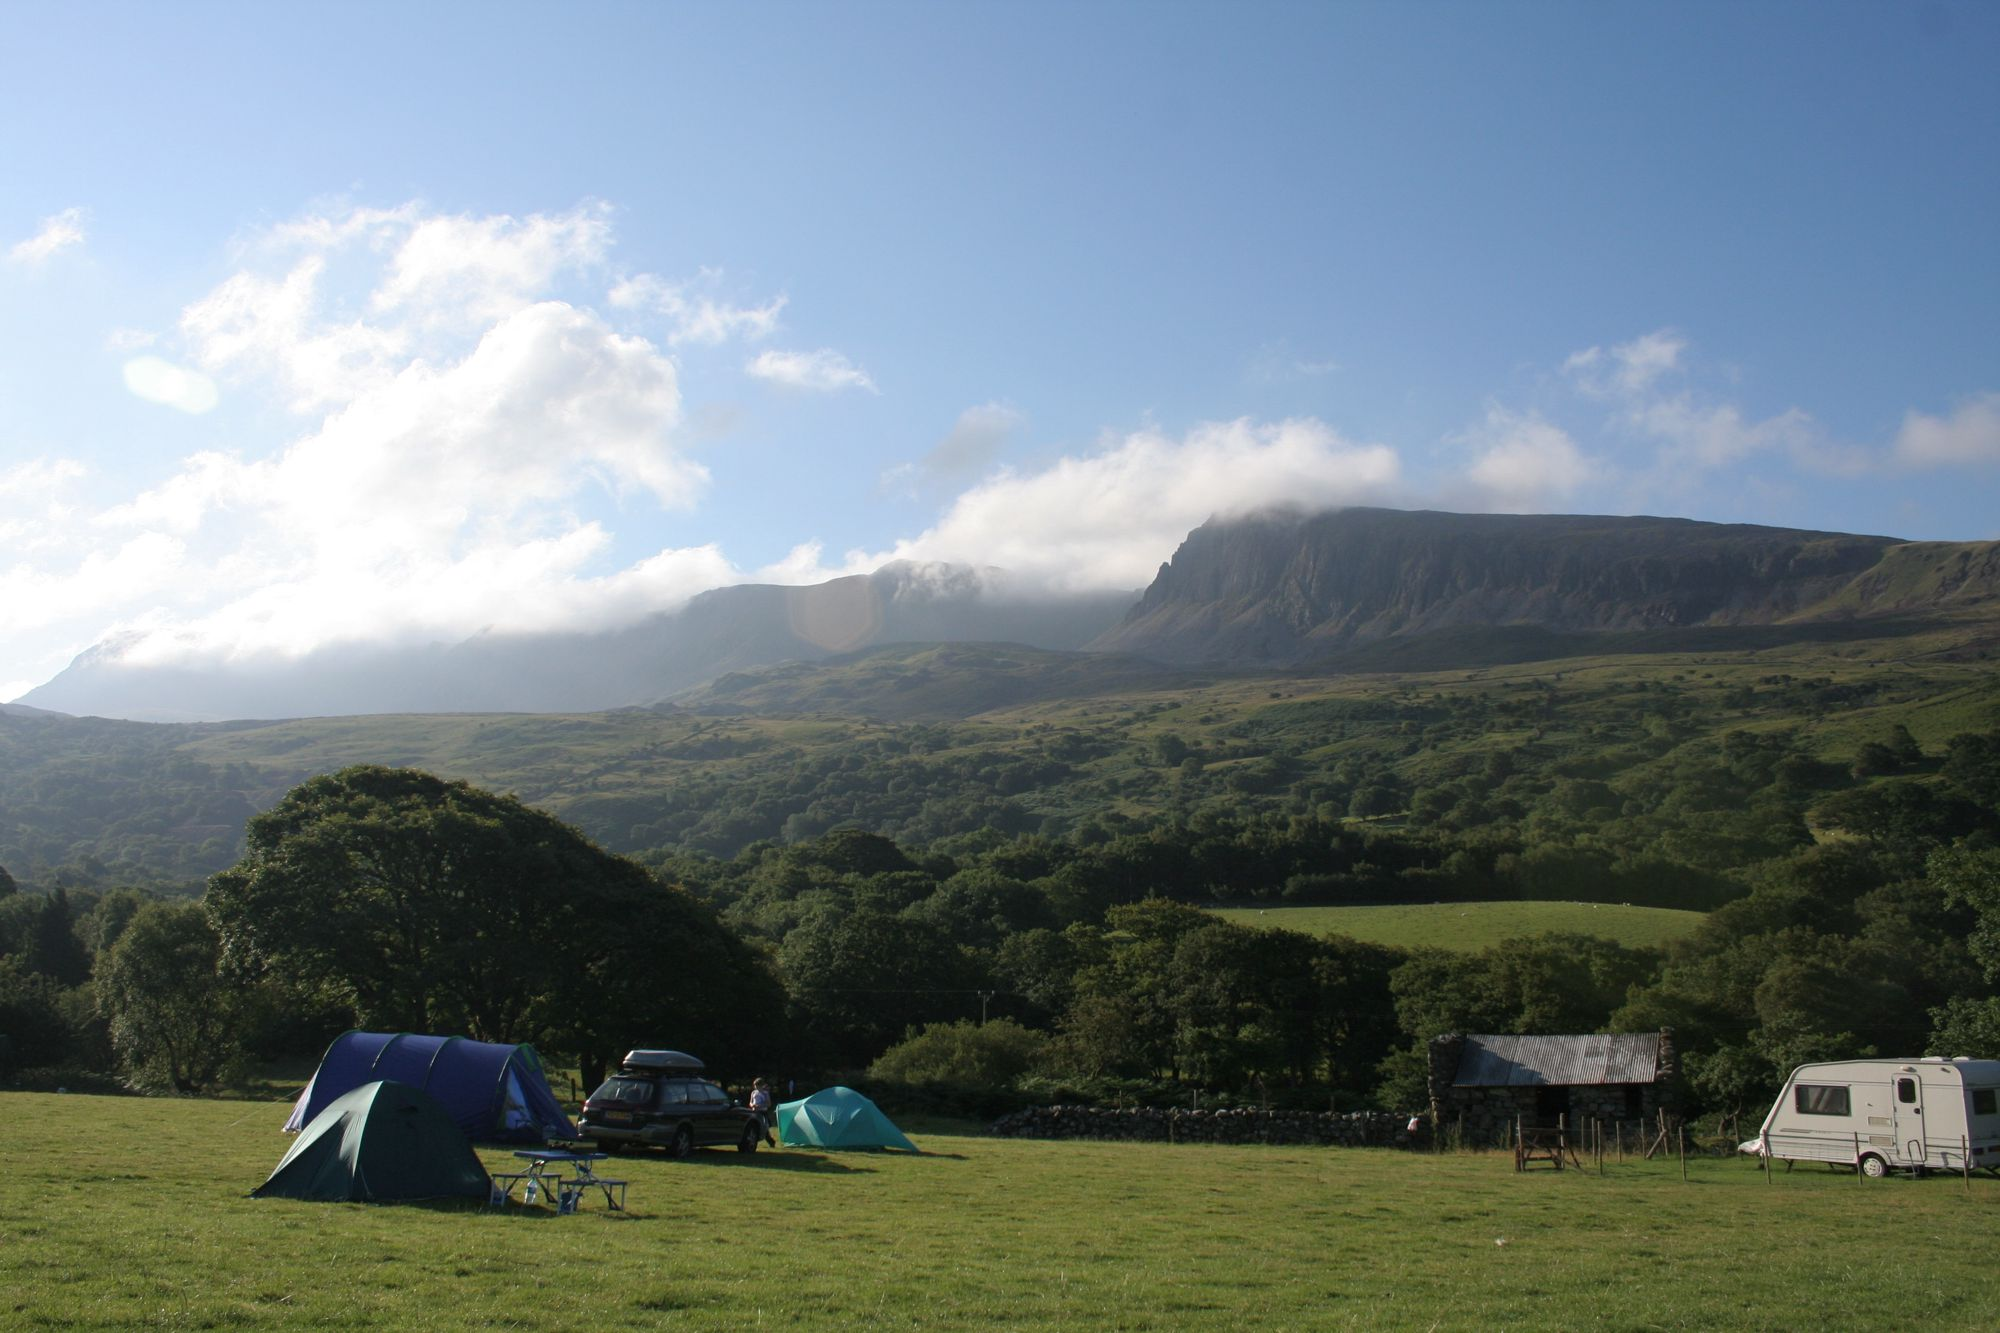 Camp at the foot and then ascend into the heavens via mirrored lakes, bare peaks and rocky cairns. It's summit special.